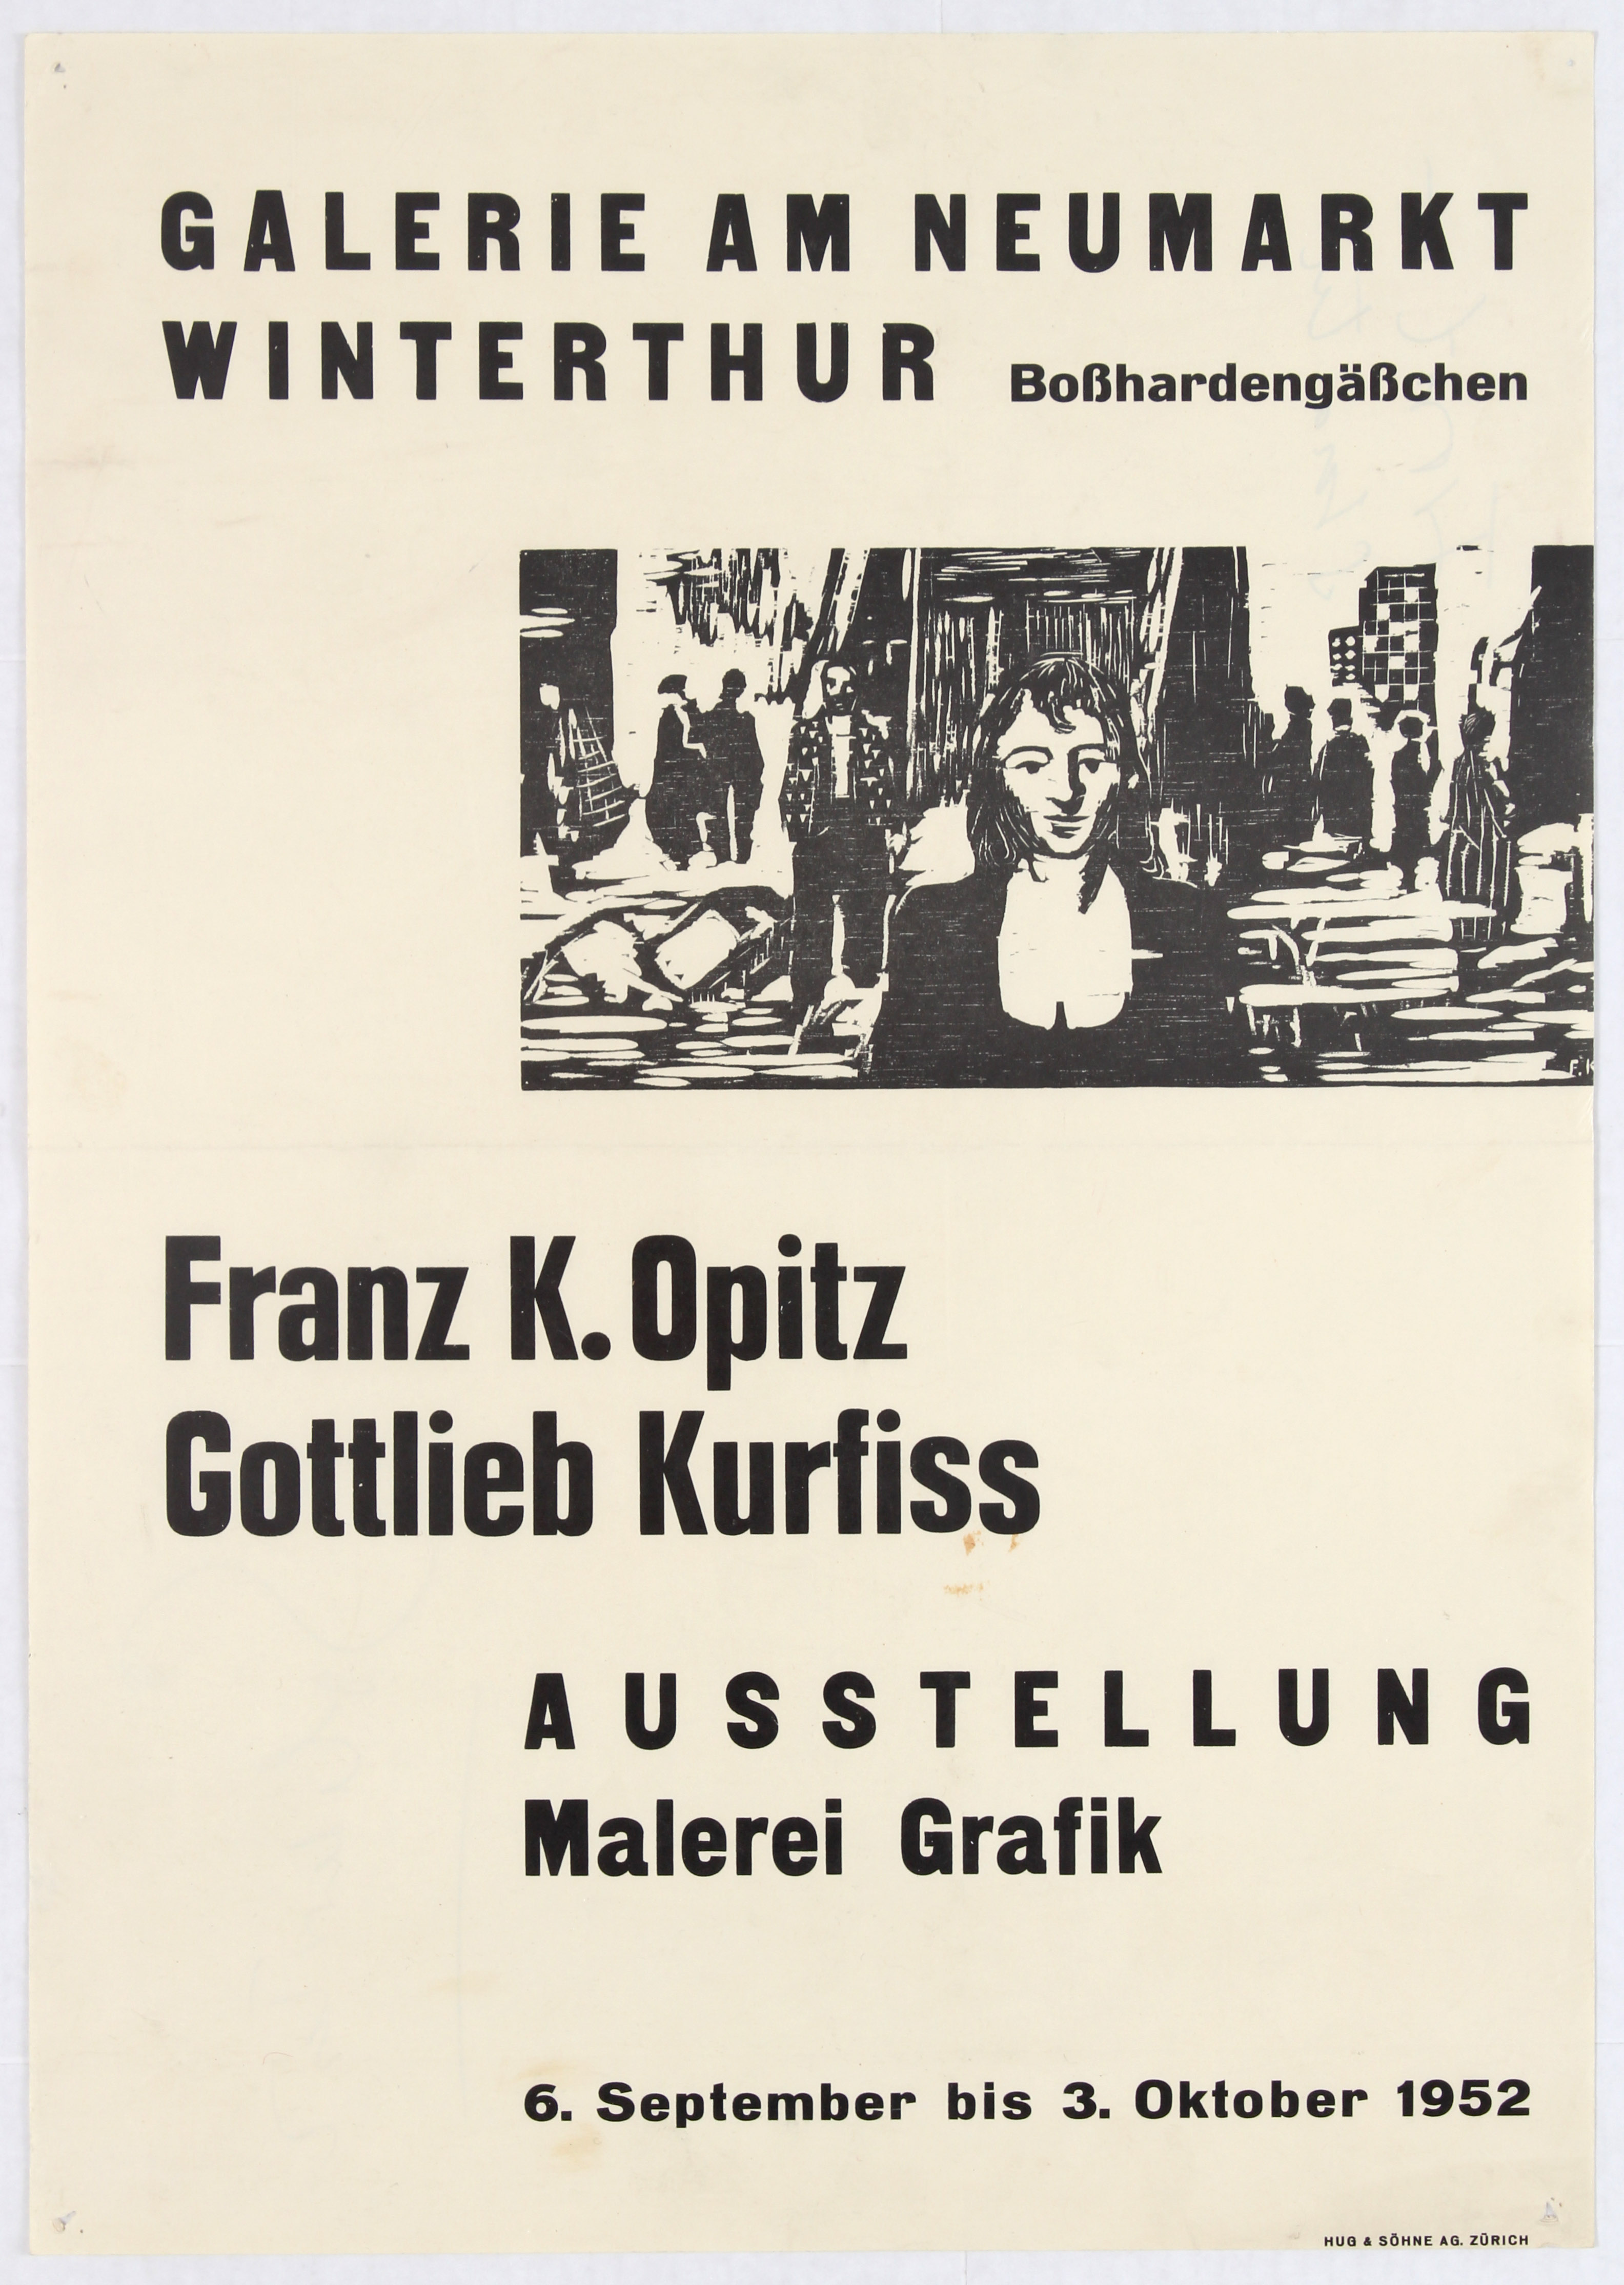 Lot 1510 - Exhibition Advertising Poster Franz K. Opitz